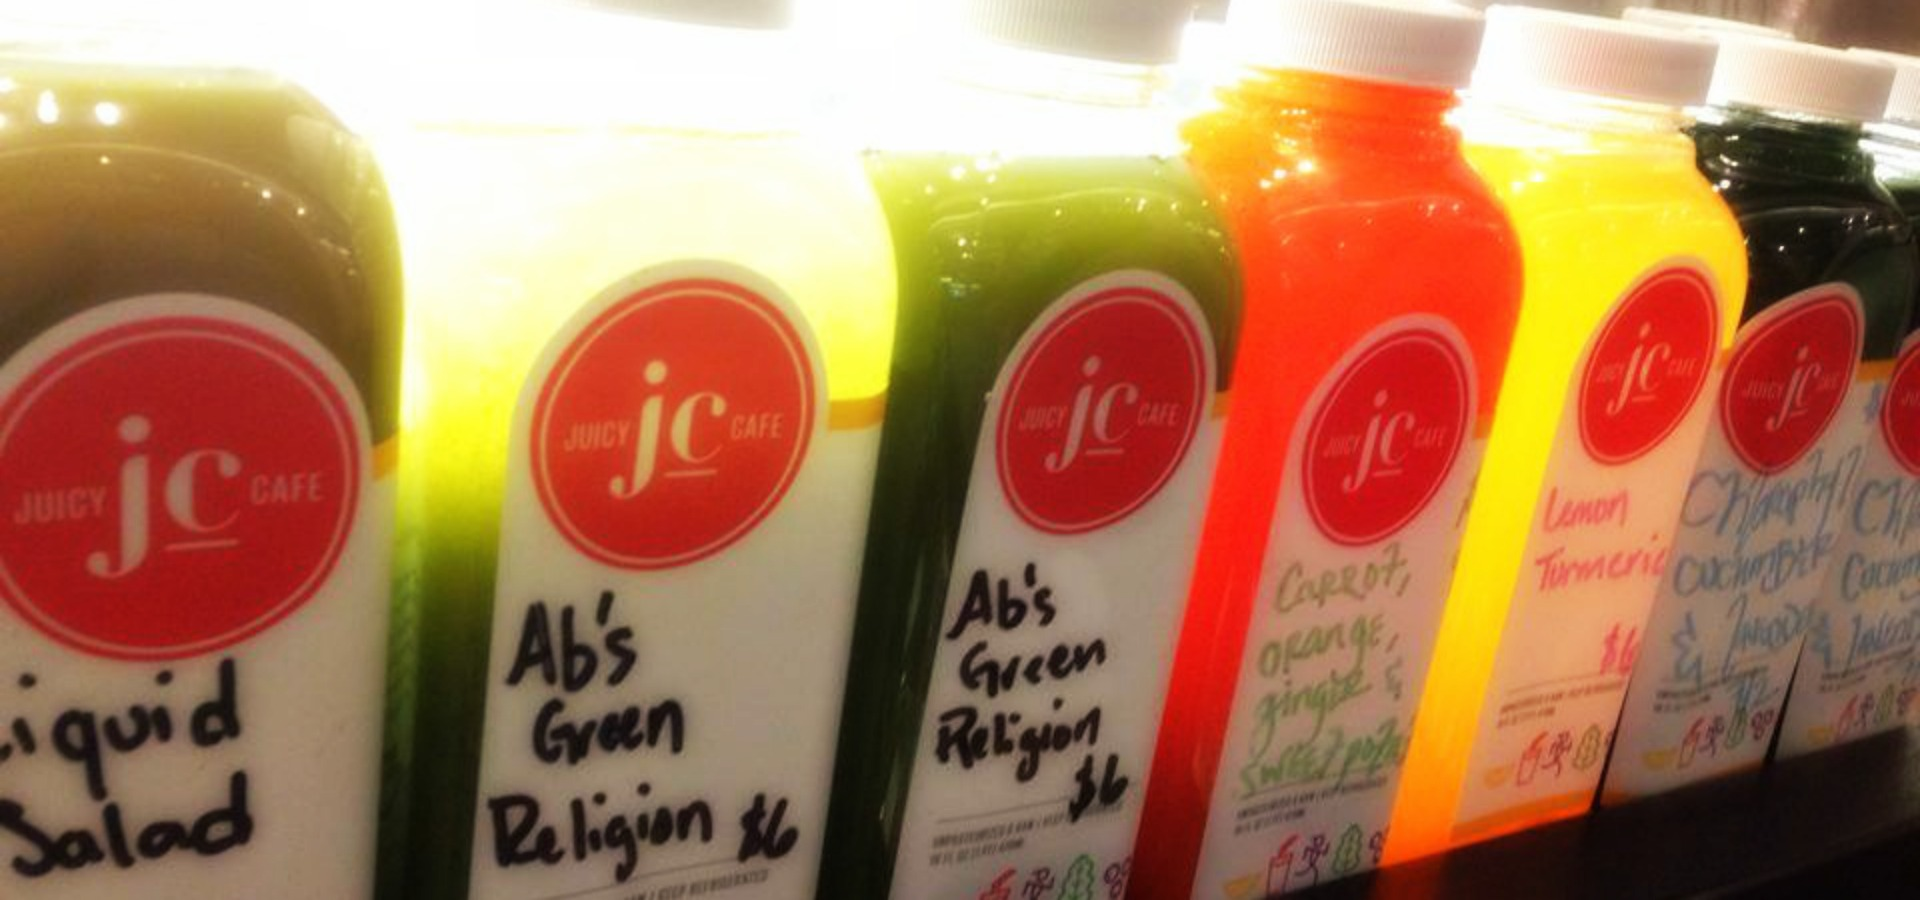 Image of bottles of juice